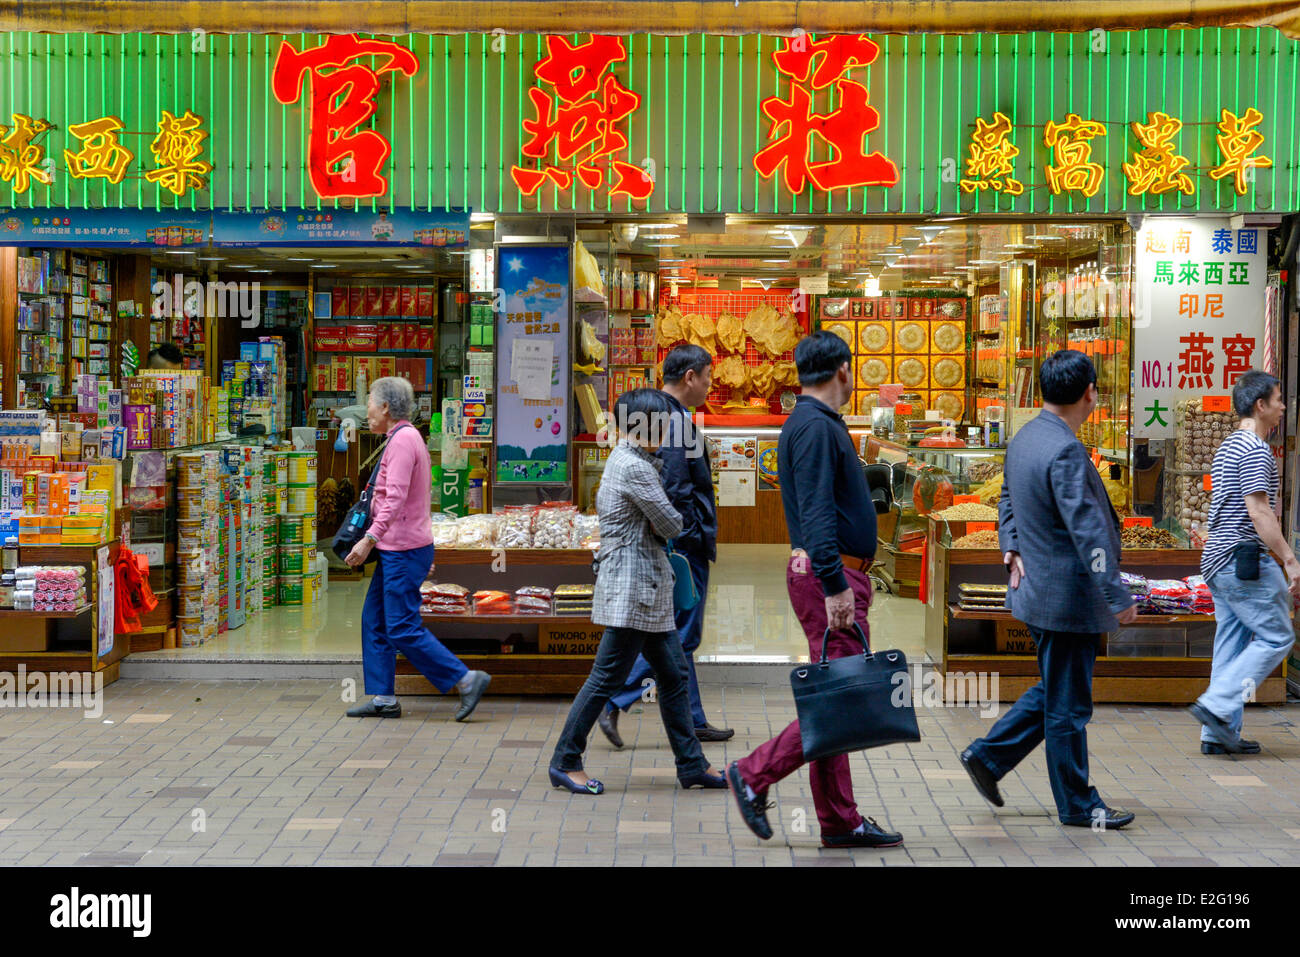 China Hong Kong Kowloon District Hankon Road go and come from pedestrians on a pavement passing in front of a Chinese - Stock Image